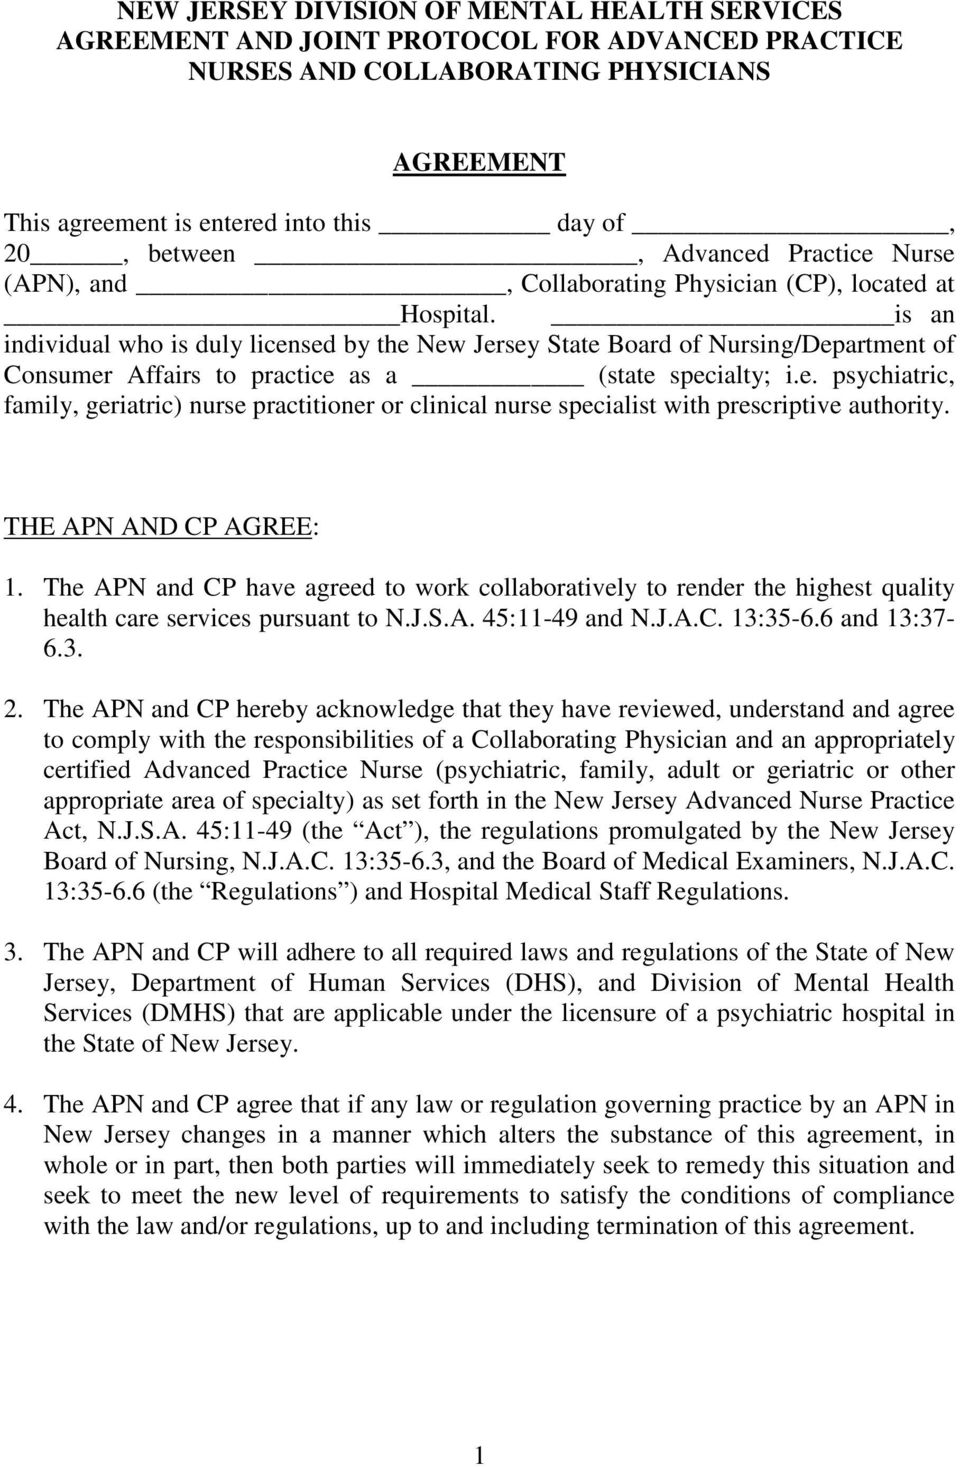 New Jersey Division Of Mental Health Services Agreement And Joint